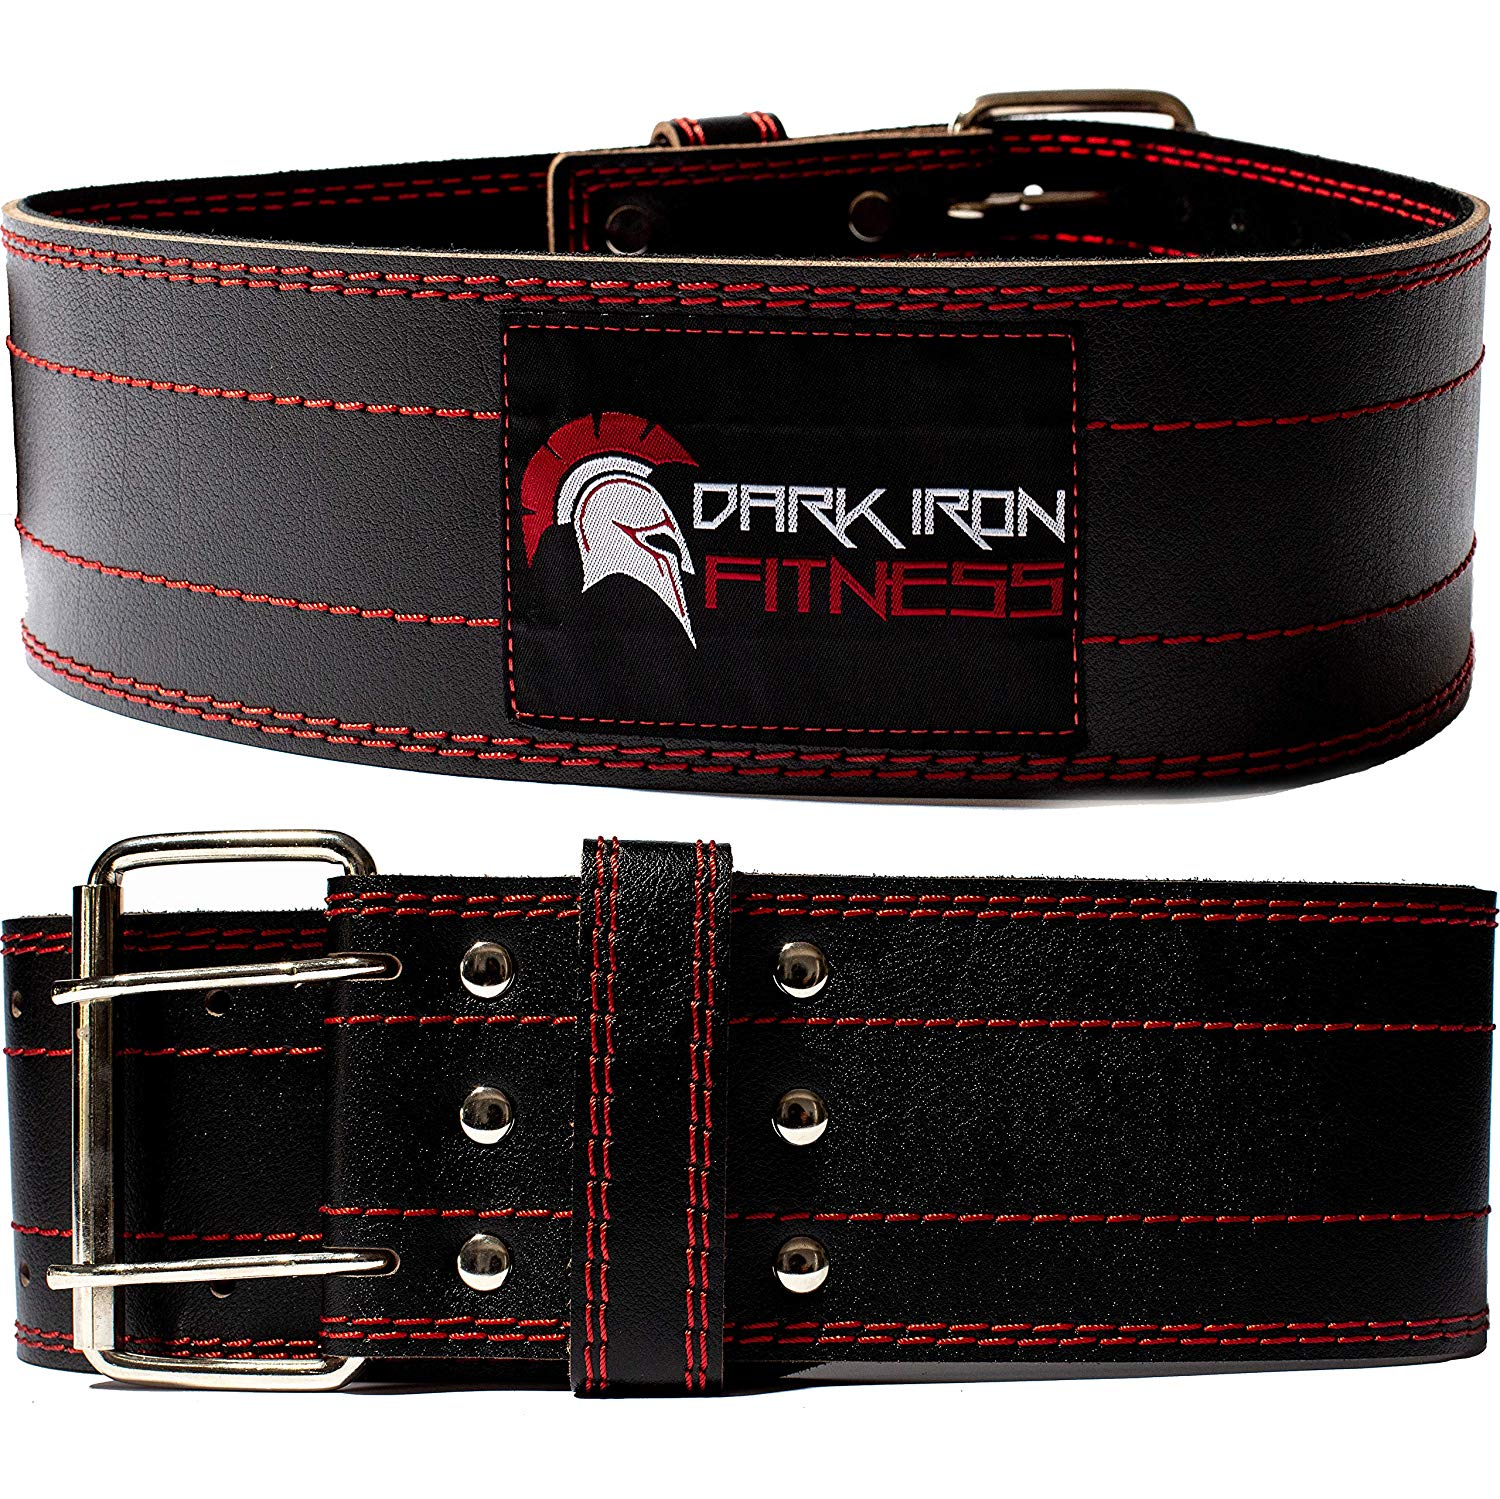 Dark Iron Fitness Belt For Powerlifting.